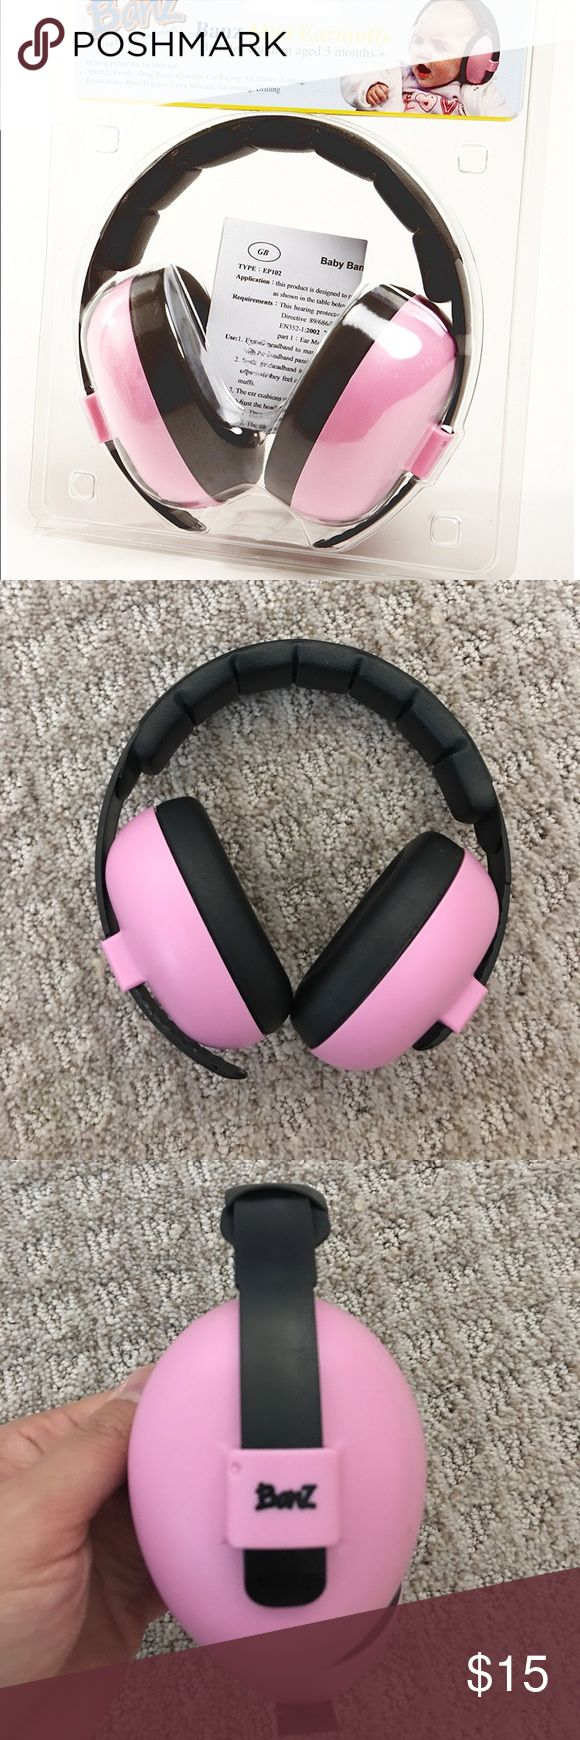 119 Best Noise Cancelling Headphones Images On Pinterest Ems Adjustable Headband Army Camo For Baby Earmuff Banz Ear Muffs In Pink